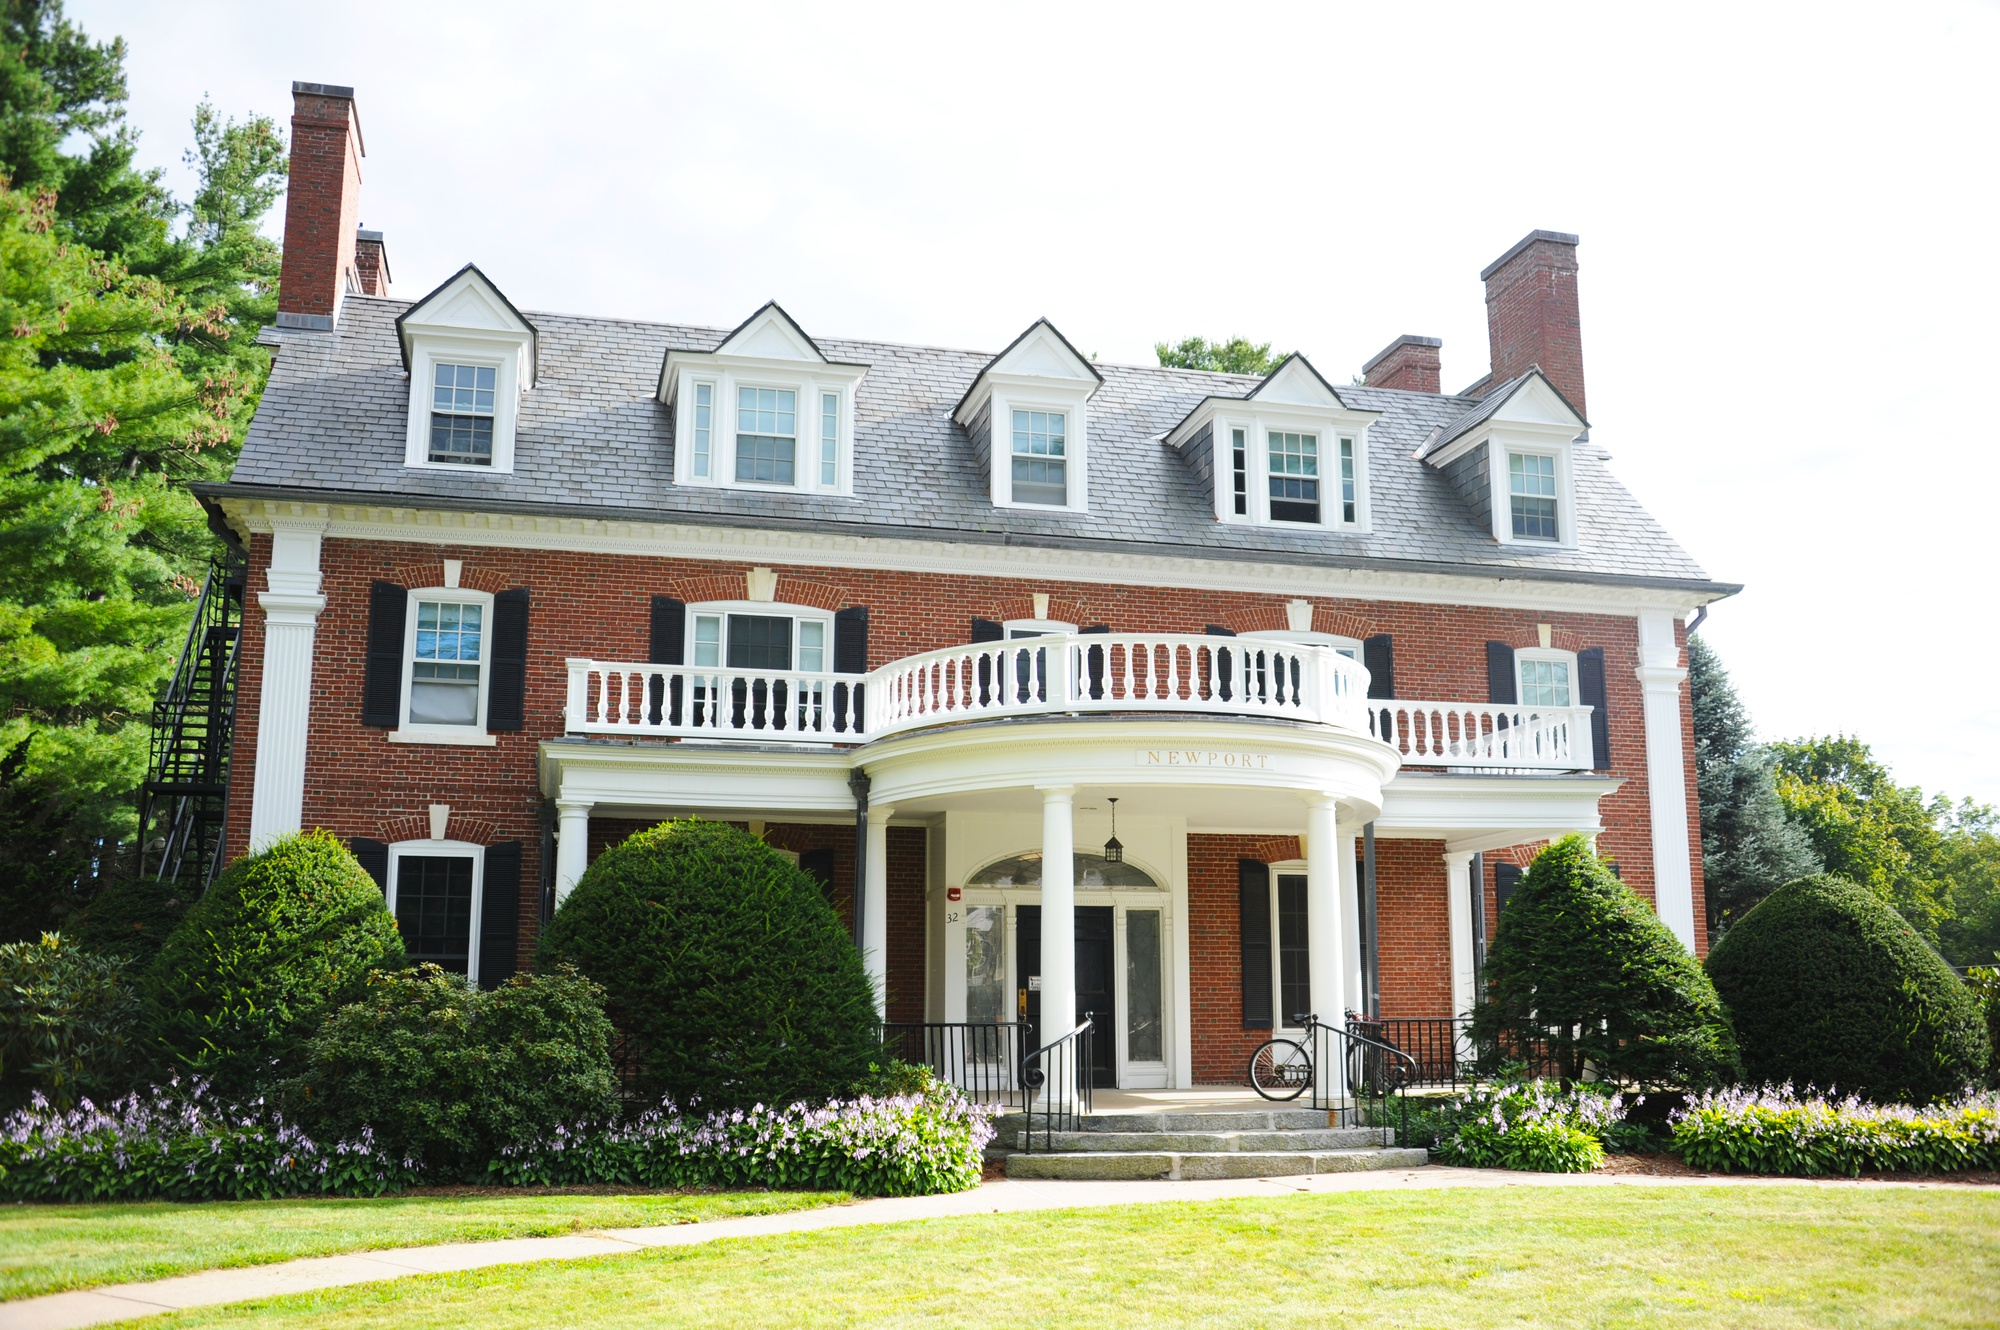 Newport House, formerly known as Phi Delta Sigma. After Amherst College banned in fraternities in 1984, the college purchased most of the former fraternity houses and converted them to residential houses.